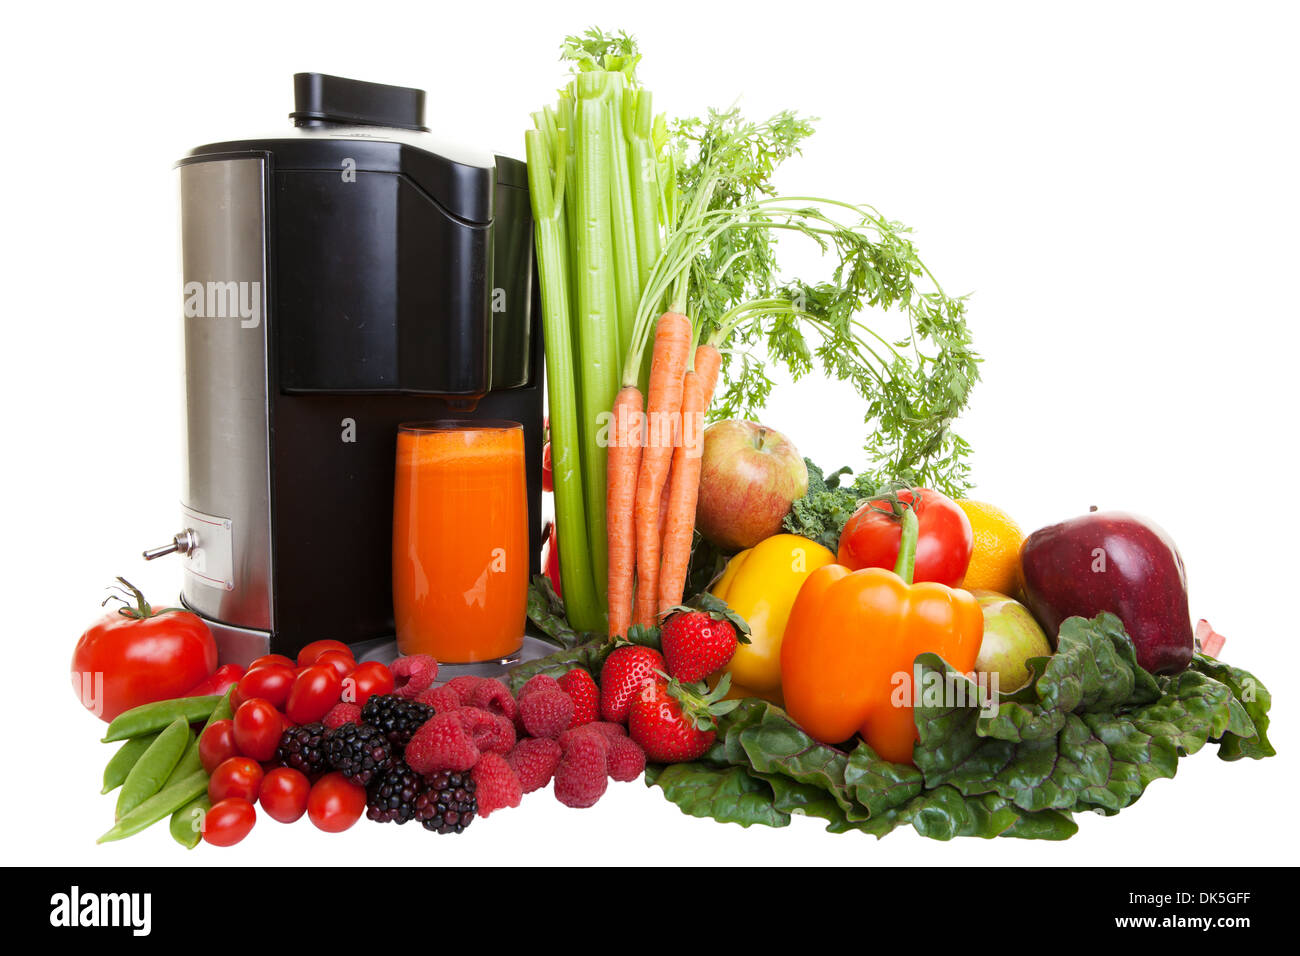 A Juicer surrounded by healthy fruits and vegetables, isolated on white. - Stock Image